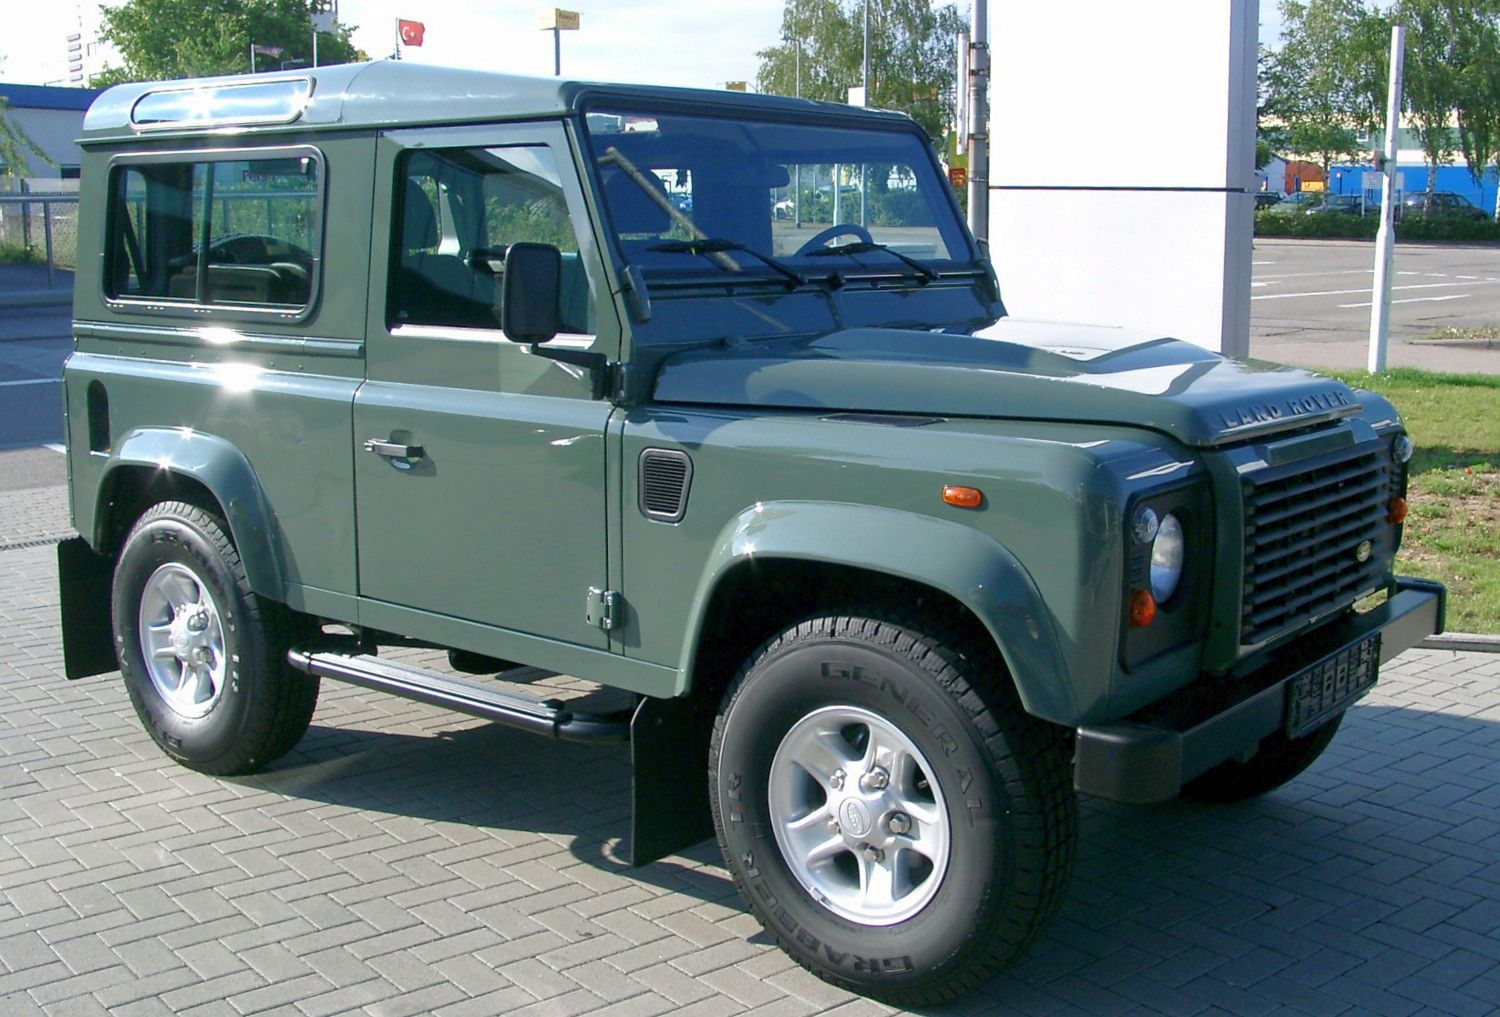 https://upload.wikimedia.org/wikipedia/commons/a/ae/Land_Rover_Defender_front_20070518.jpg